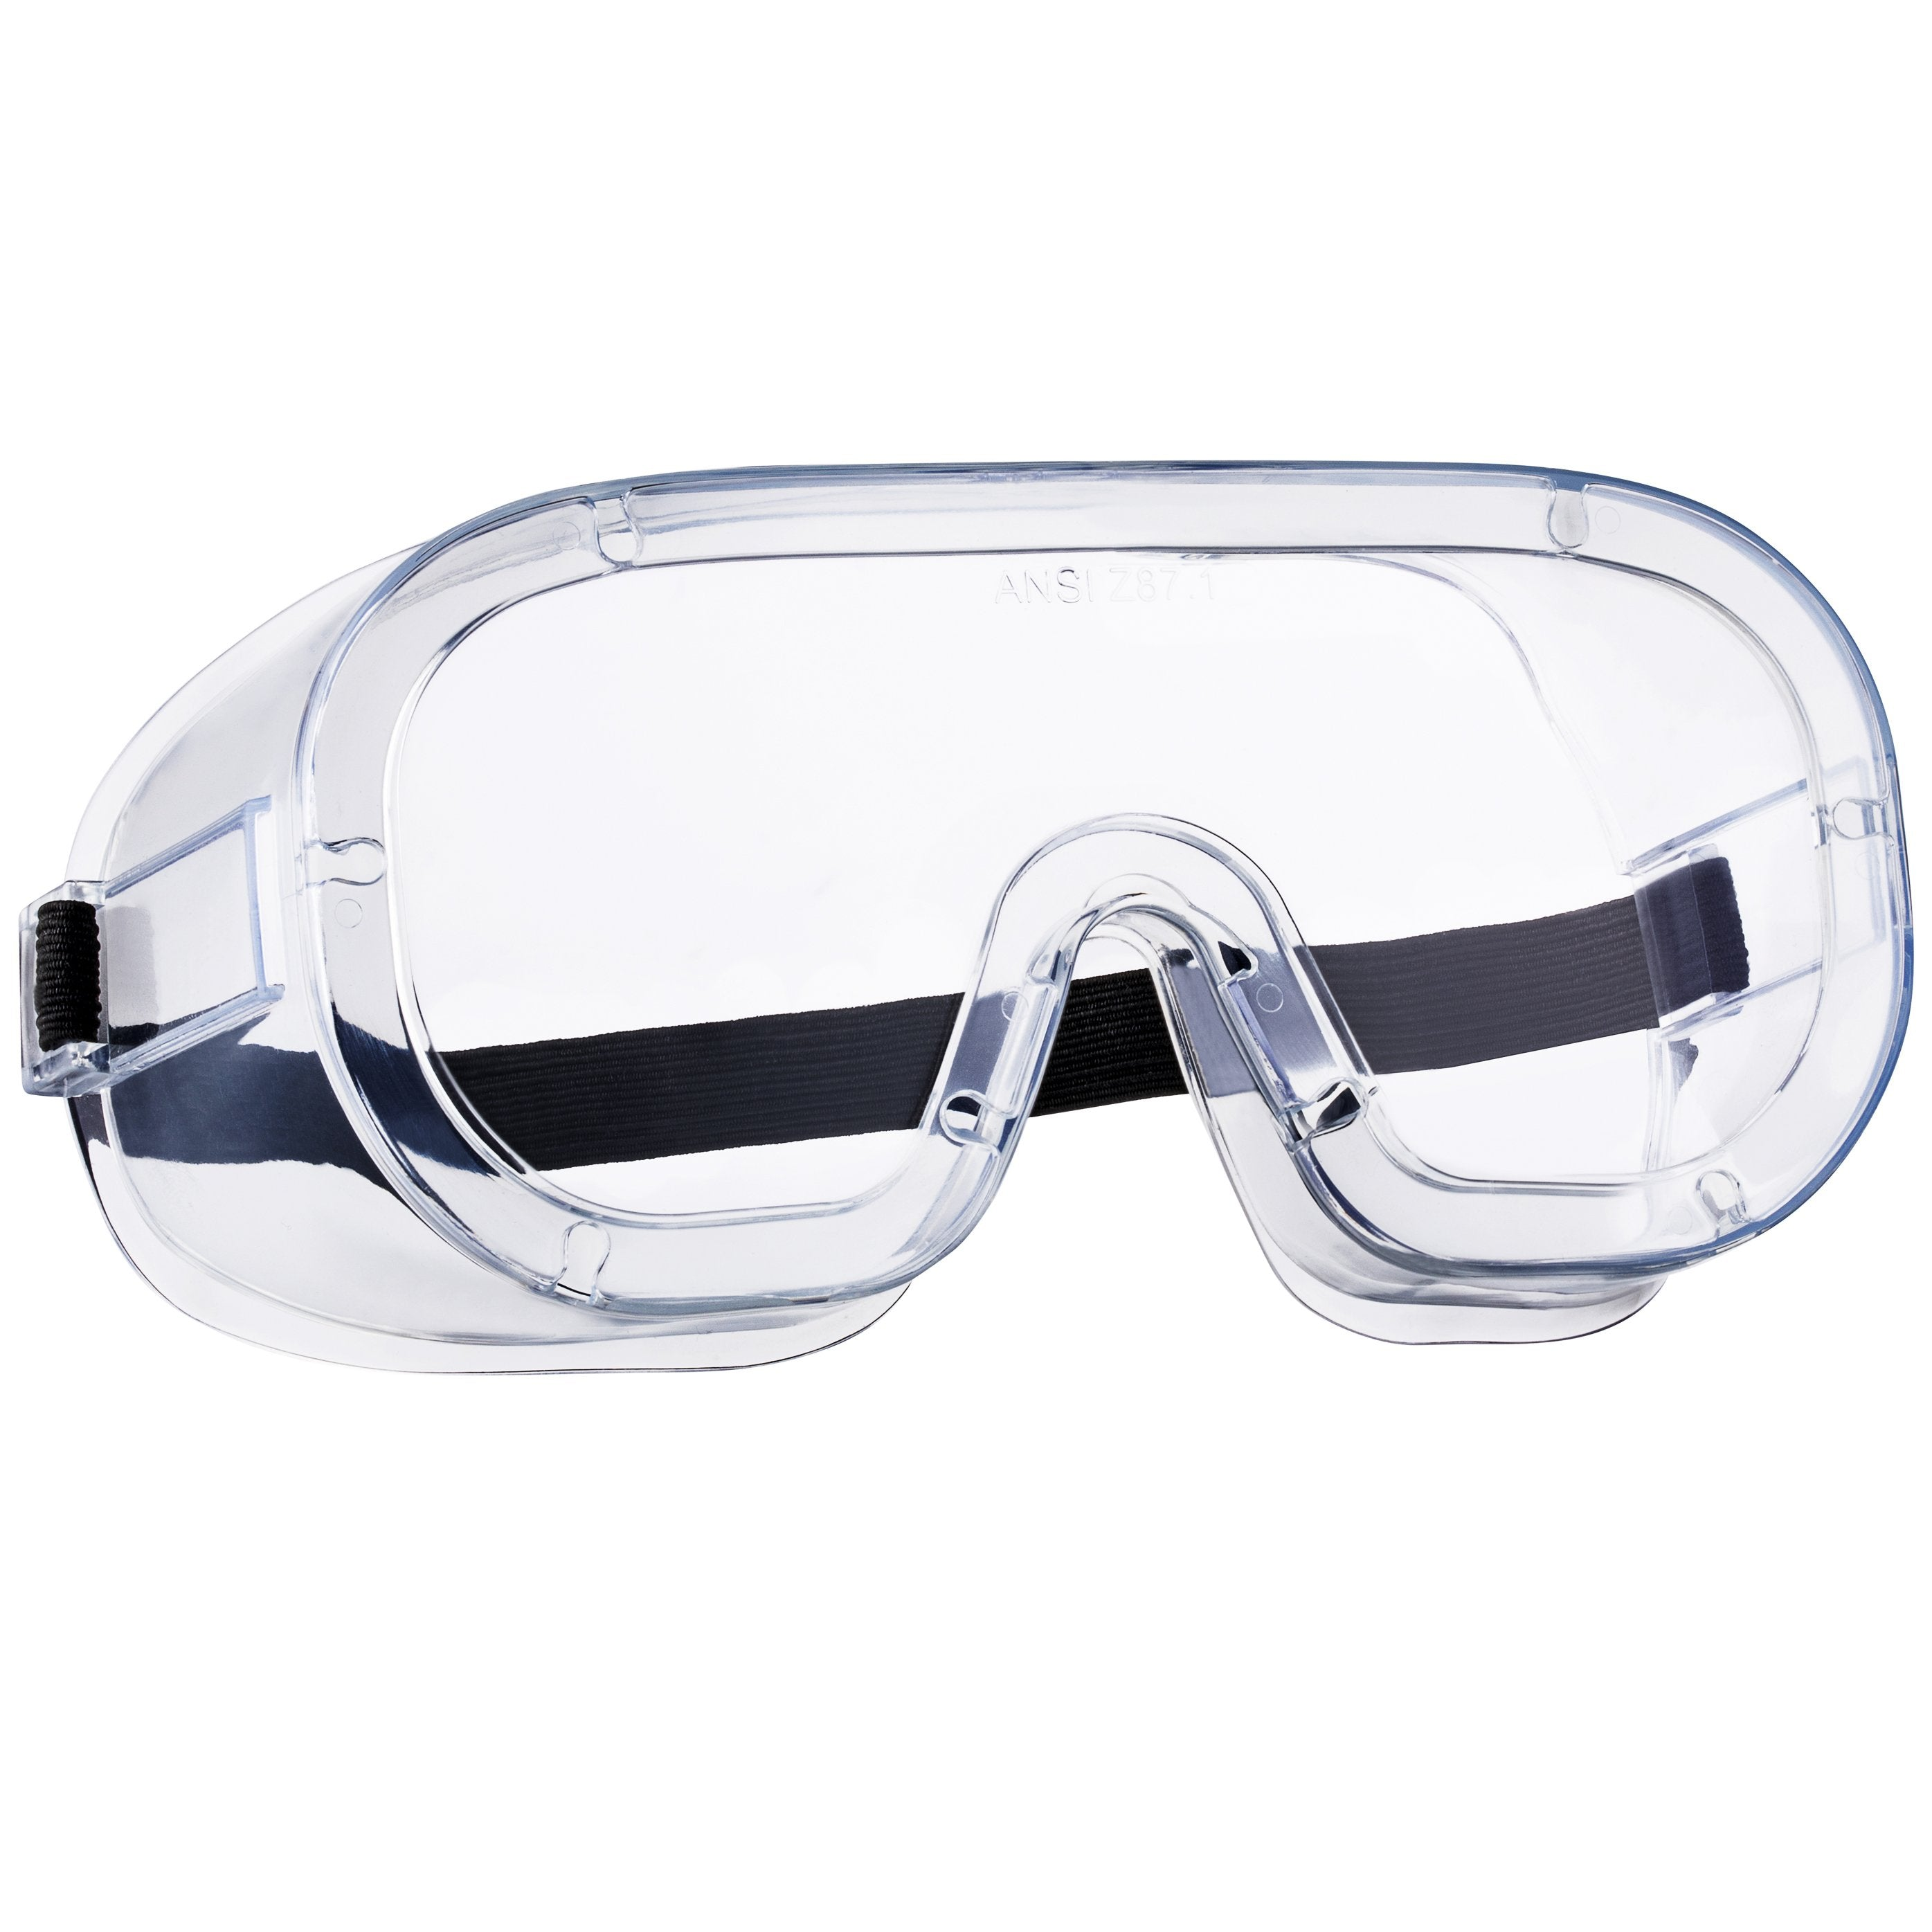 NoCry Protective Safety Goggles